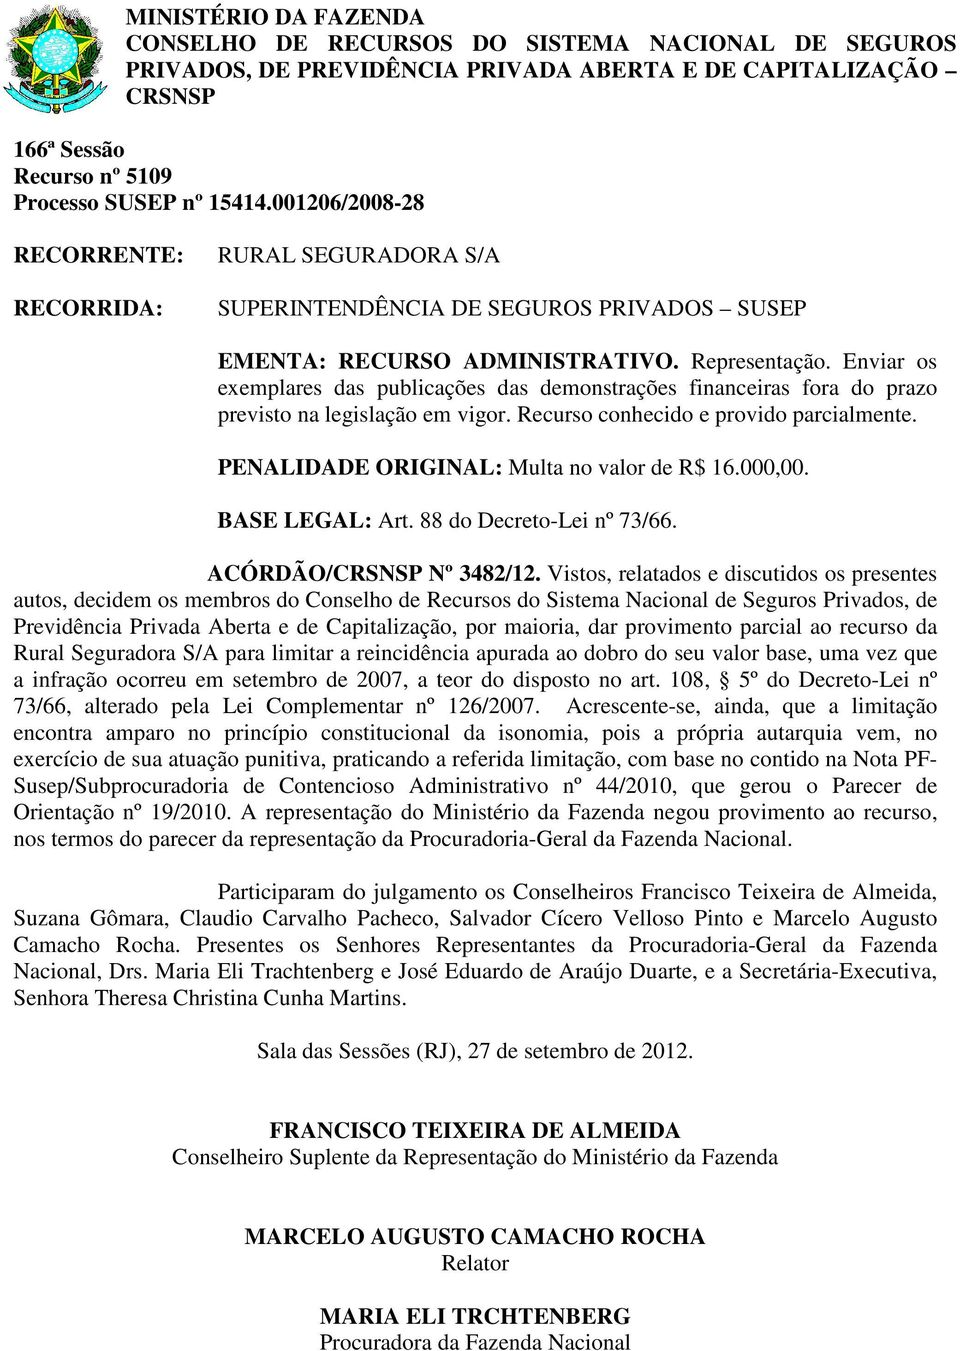 PENALIDADE ORIGINAL: Multa no valor de R$ 16.000,00. BASE LEGAL: Art. 88 do Decreto-Lei nº 73/66. ACÓRDÃO/ Nº 3482/12.